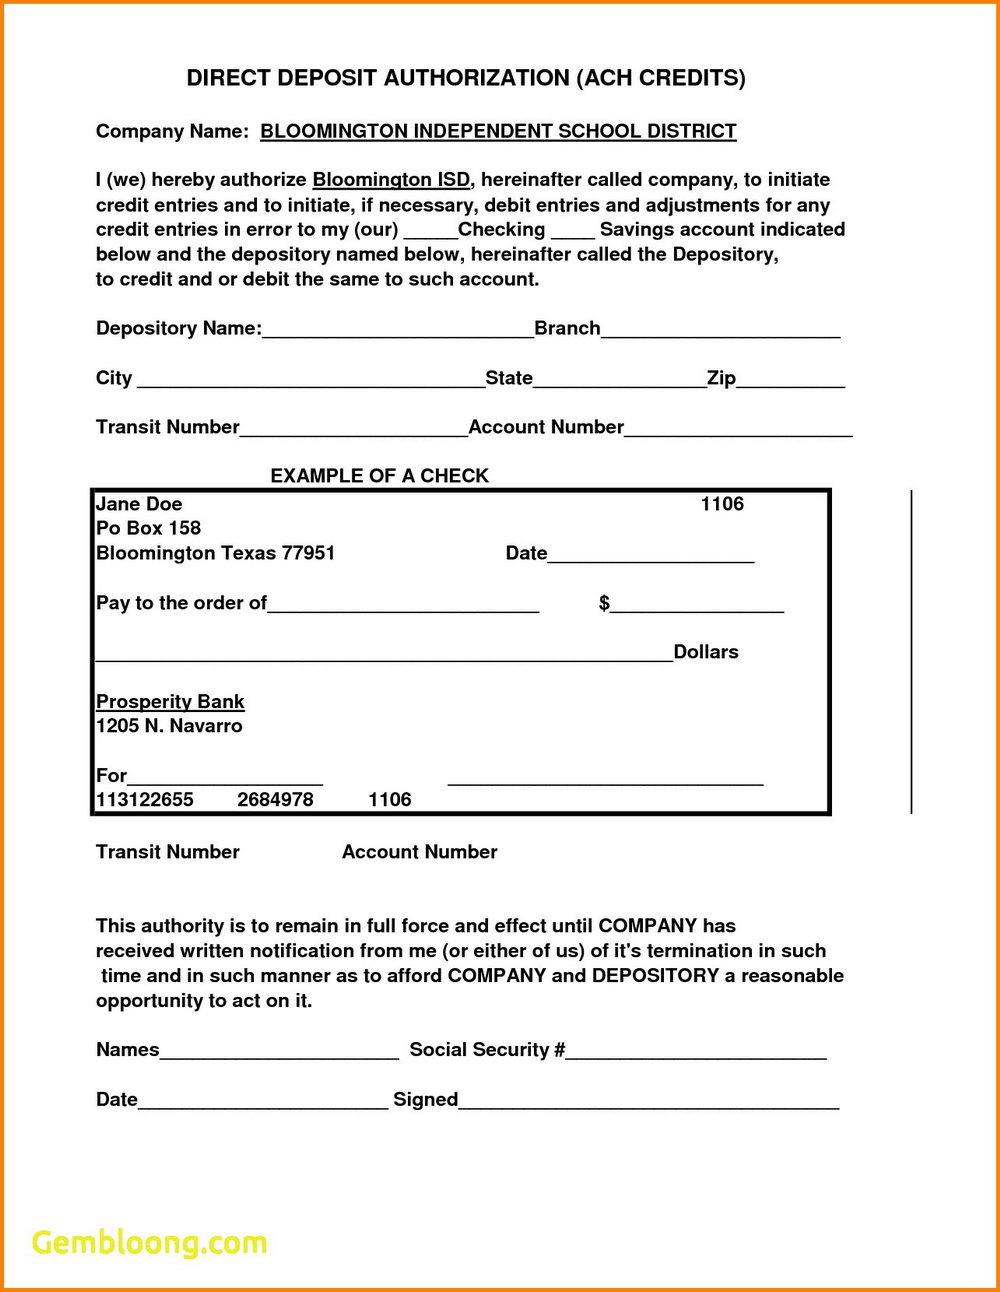 Affidavit Of Domicile Form Wells Fargo